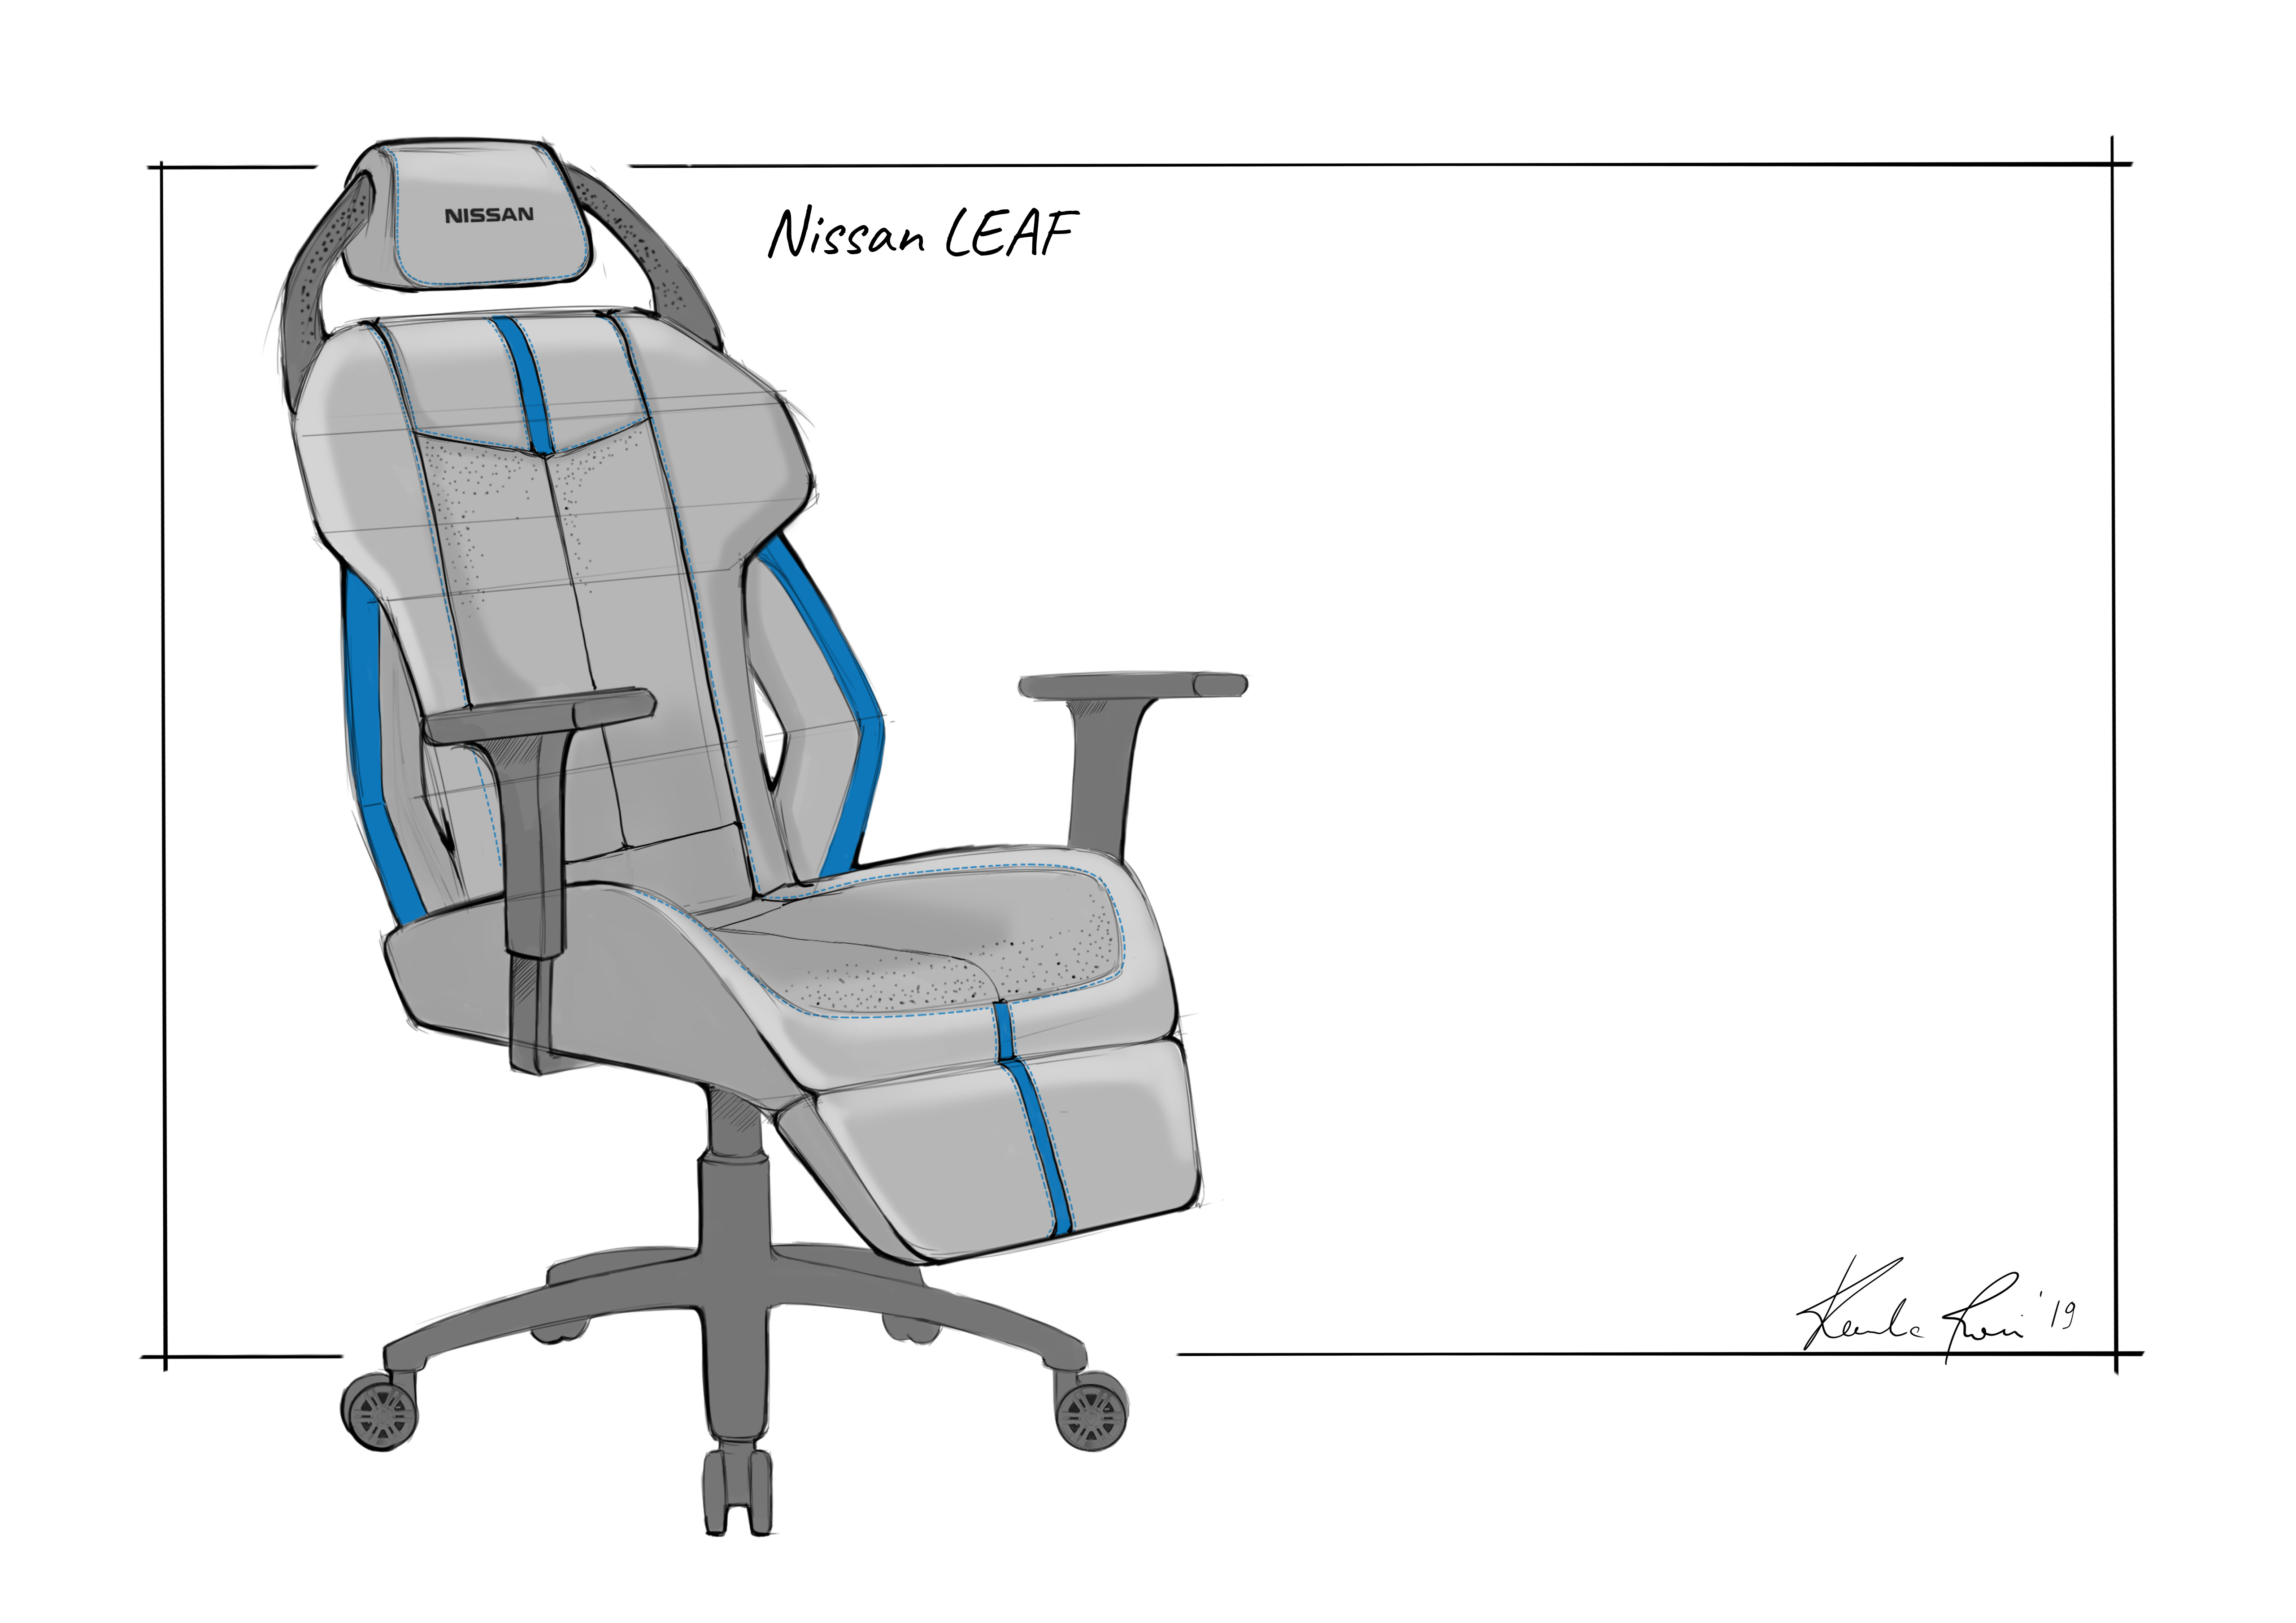 Terrific Fancy A Gaming Chair Thats Inspired By The Gt R Nissan Has Machost Co Dining Chair Design Ideas Machostcouk